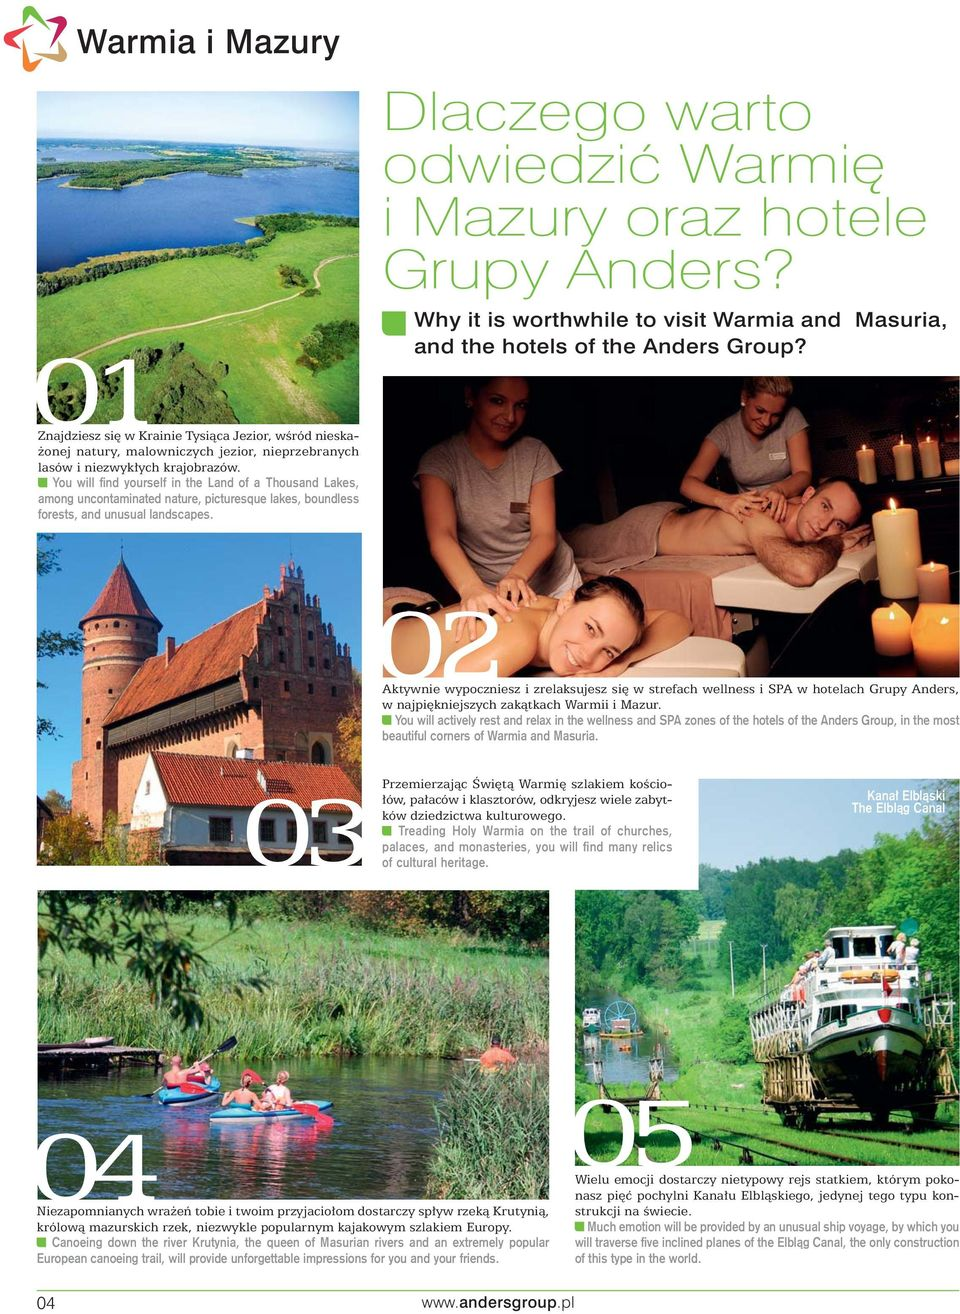 Dlaczego warto odwiedzić Warmię i Mazury oraz hotele Grupy Anders? Why it is worthwhile to visit Warmia and Masuria, and the hotels of the Anders Group?